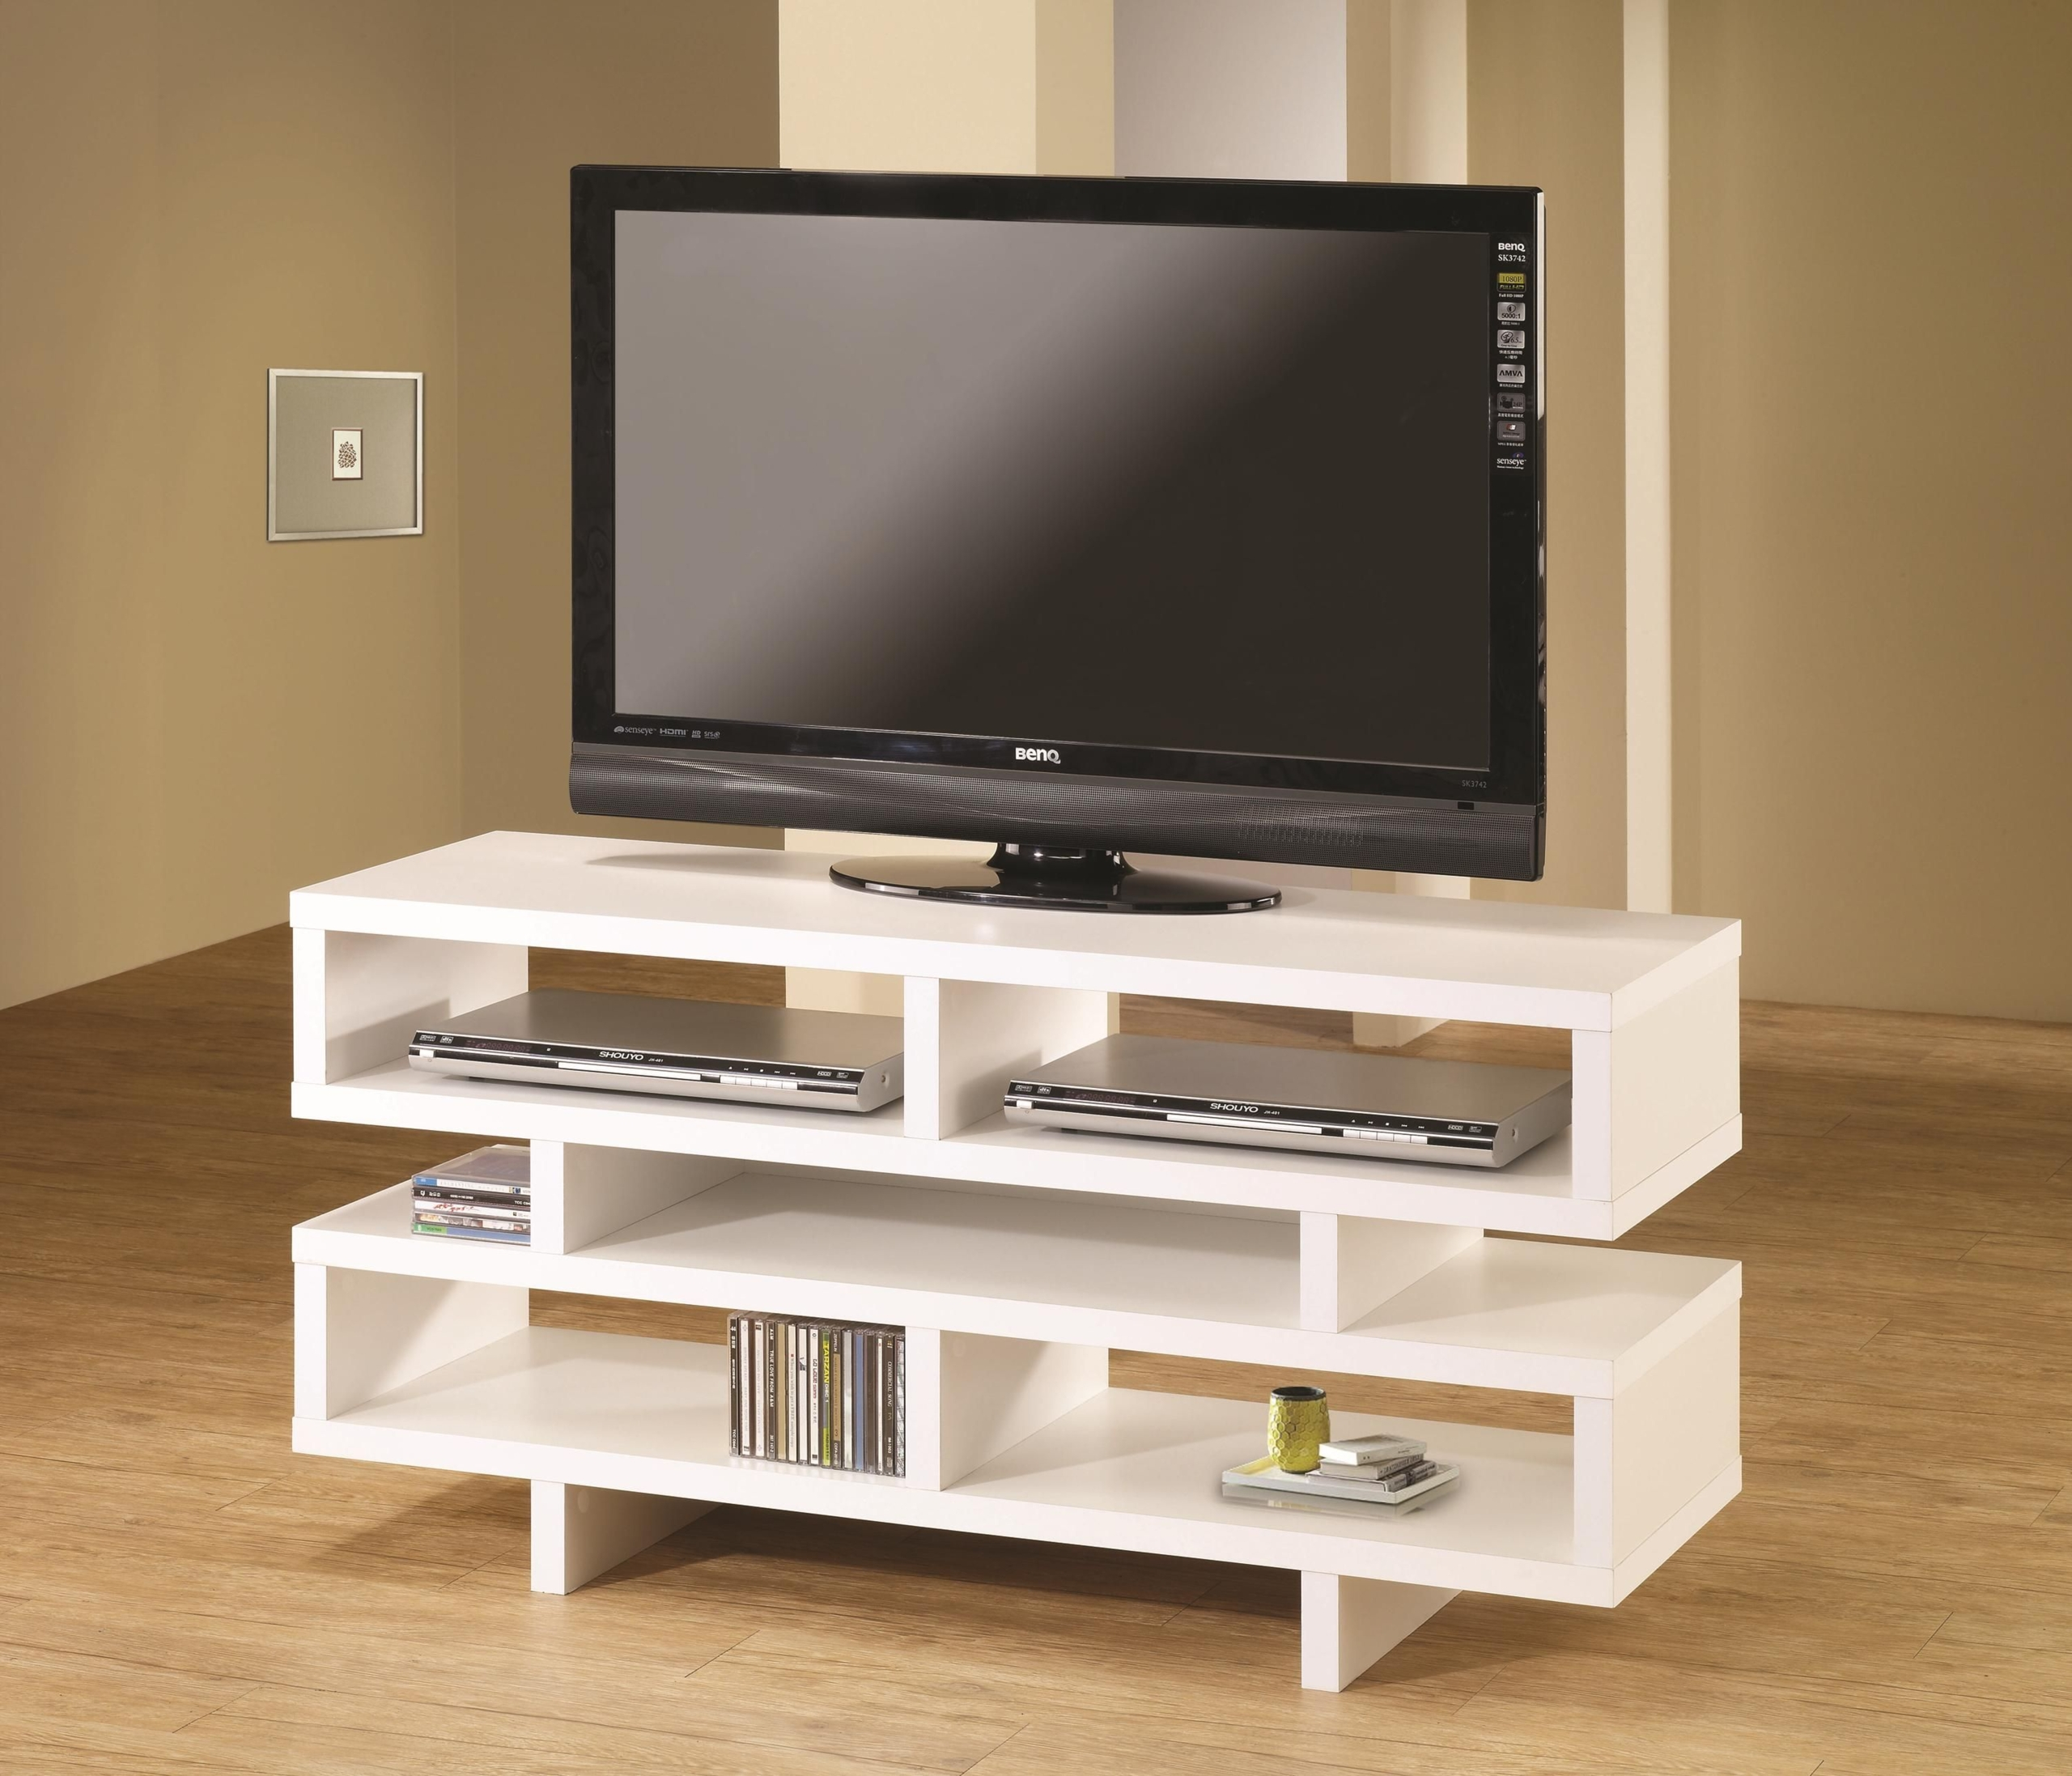 Tv Stand For Bedroom You Ll Love In 2021 Visualhunt